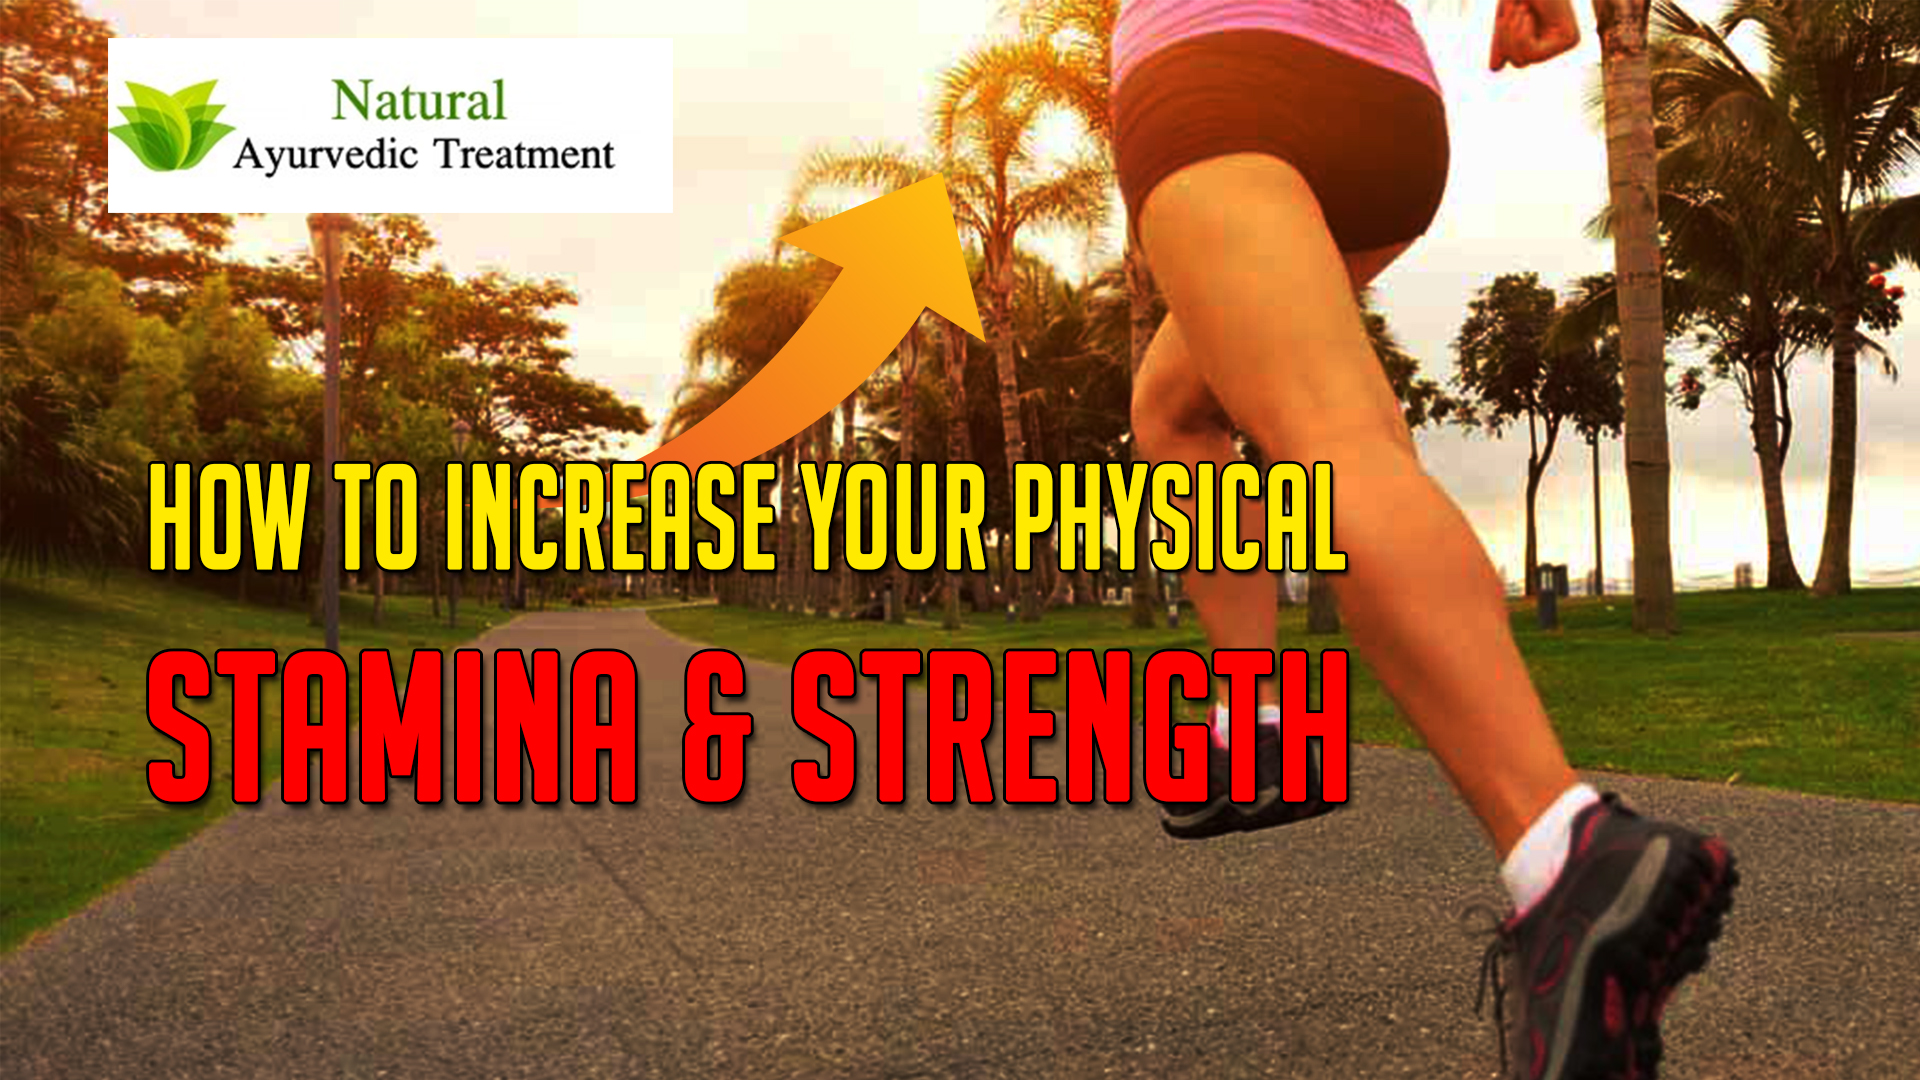 How to Increase Your Physical Stamina and Strength